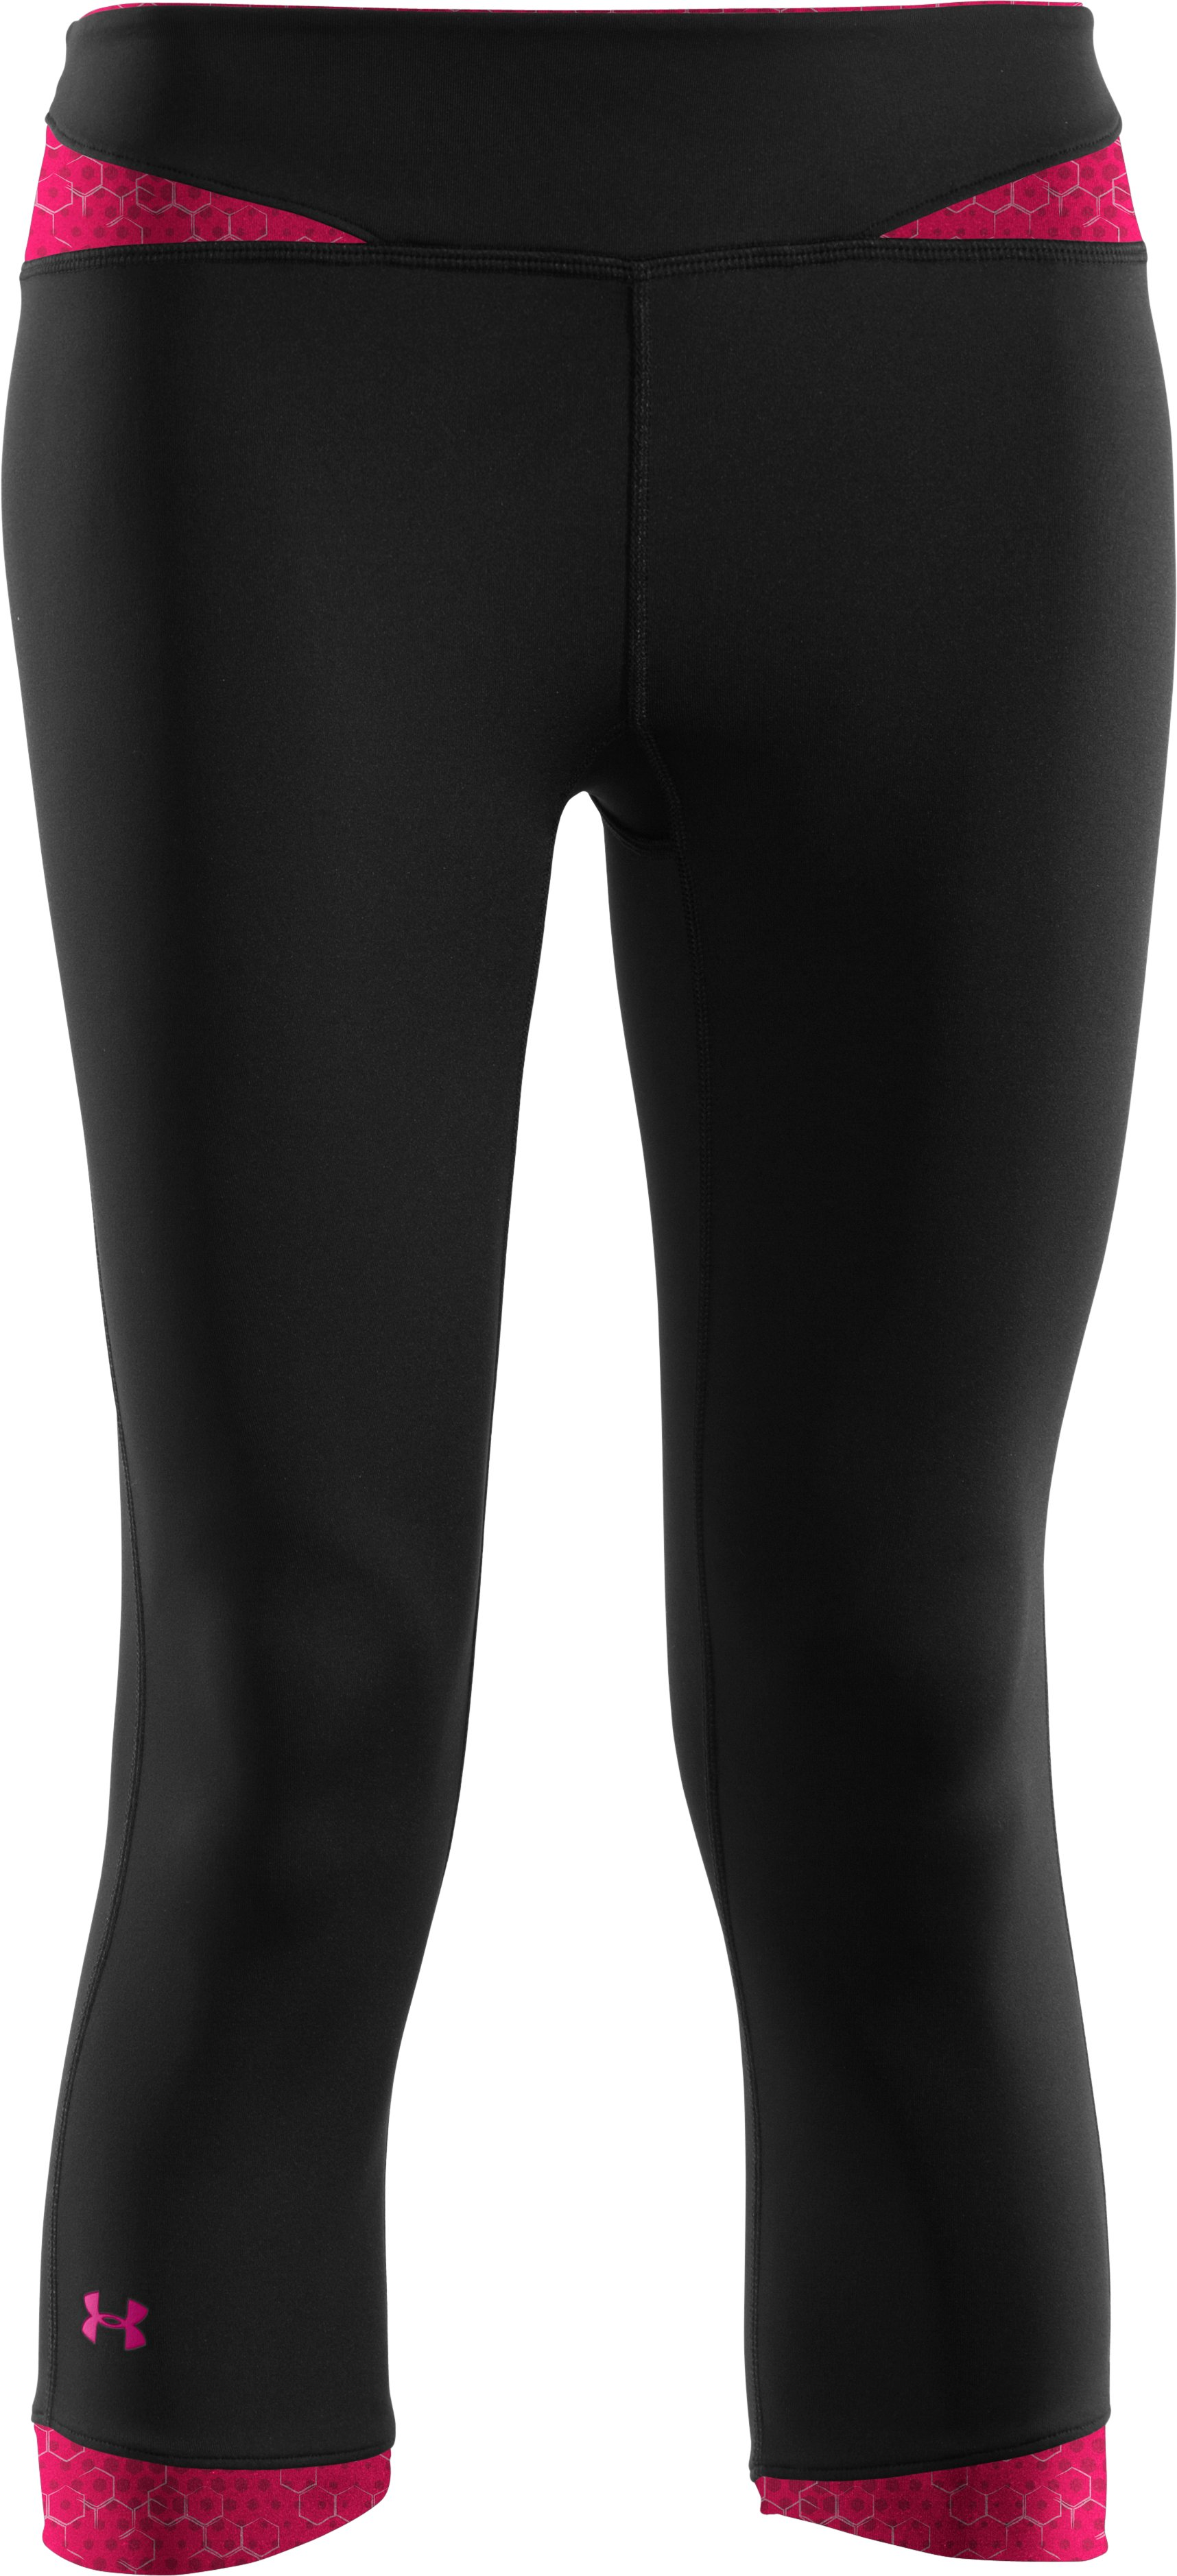 Women's HeatGear® Sonic All-In-One Capri test, Black , undefined